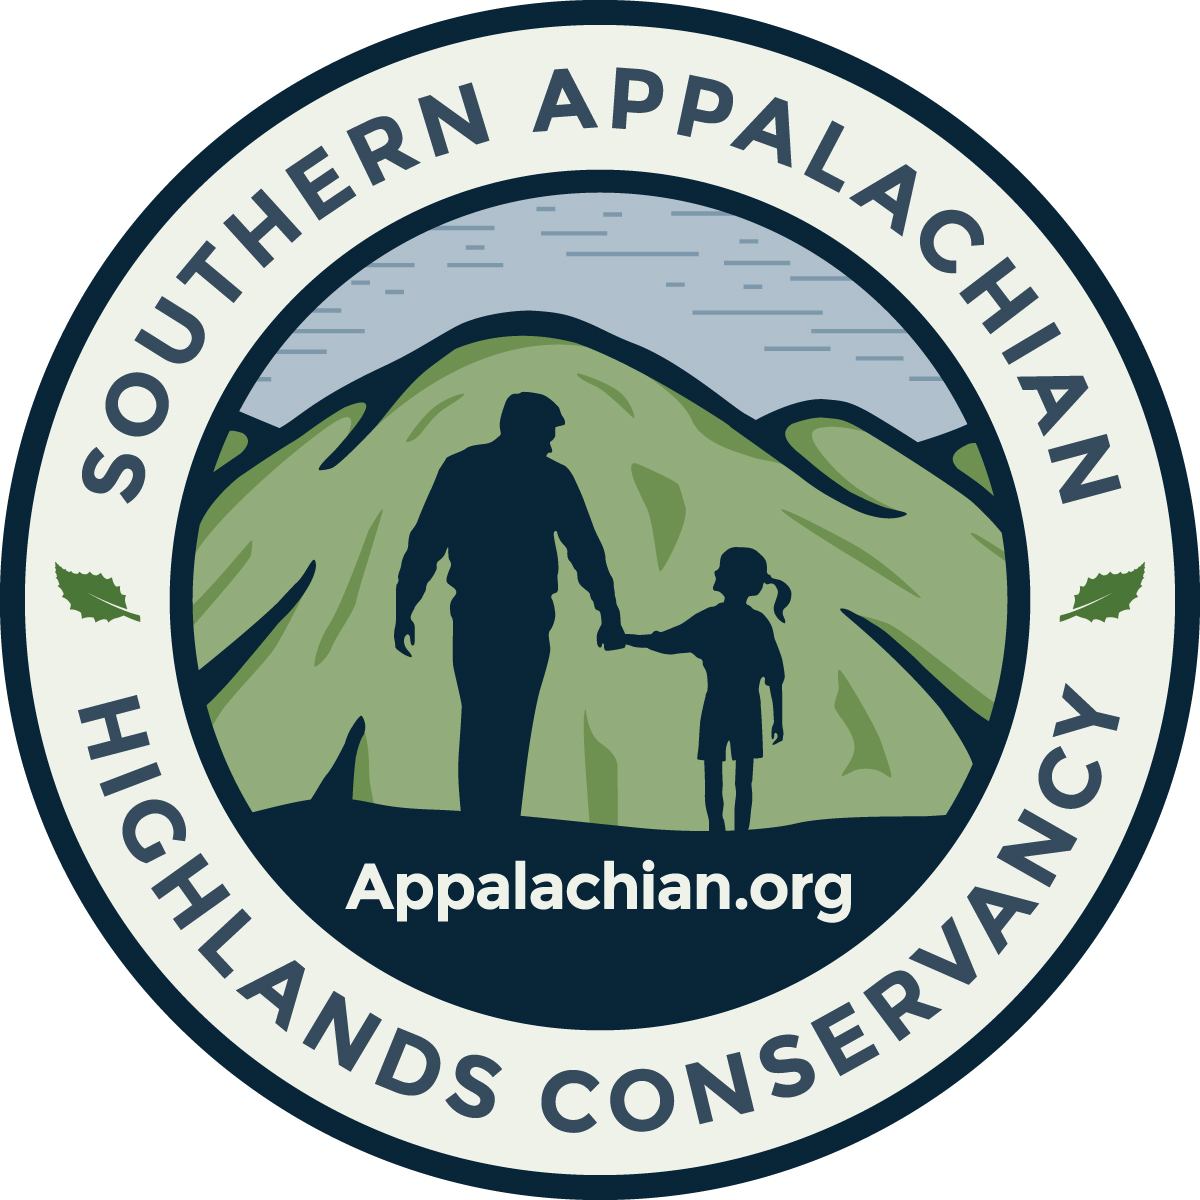 Southern Appalachian Highlands Conservancy Gift Shop